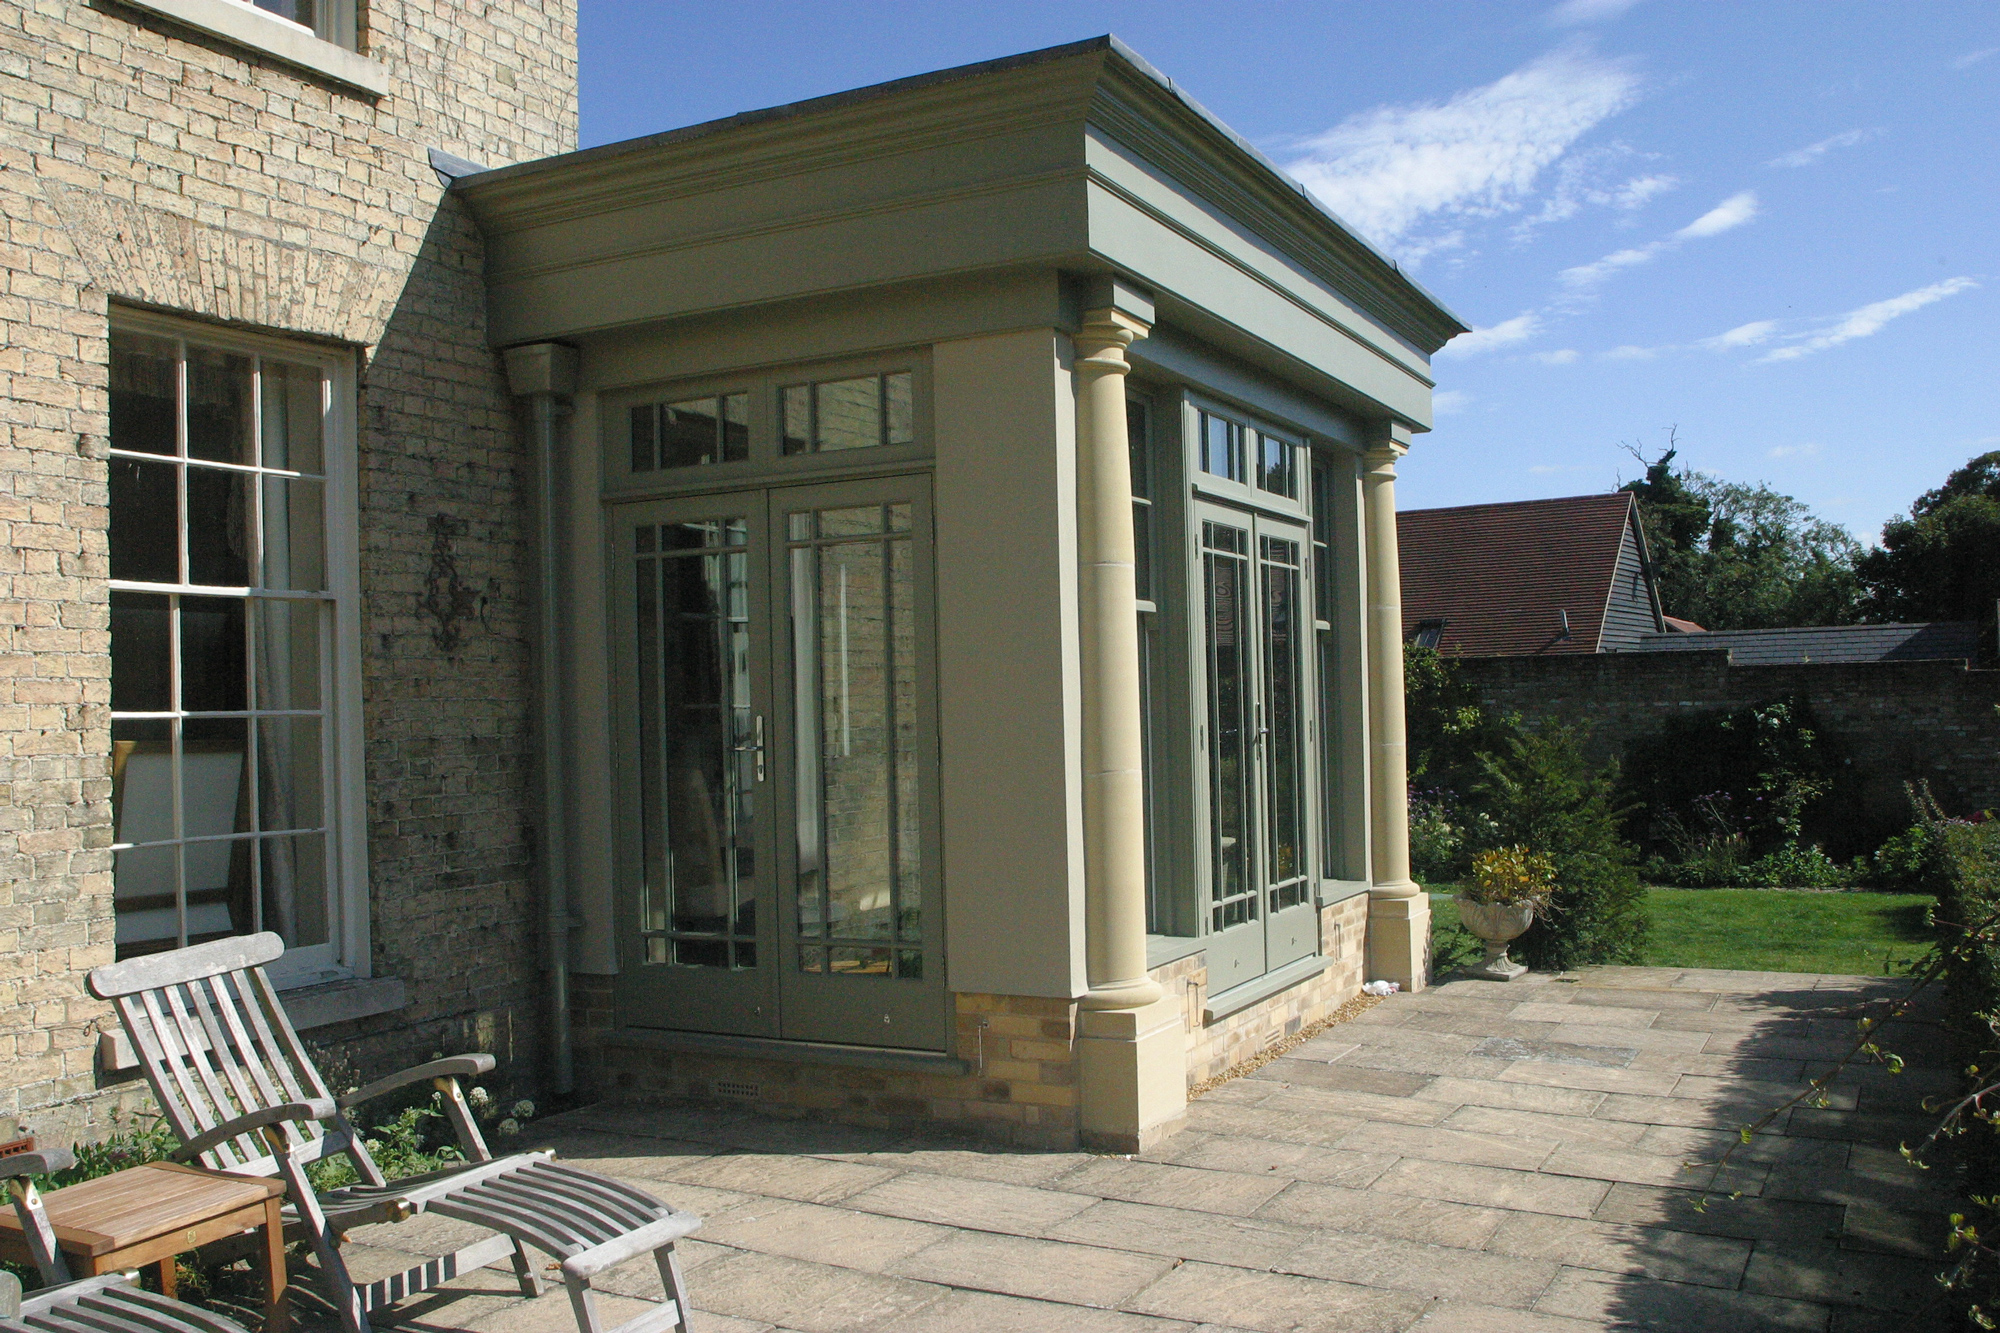 Kitchen extensions project 2 heritage orangeries for Orangery extension kitchen